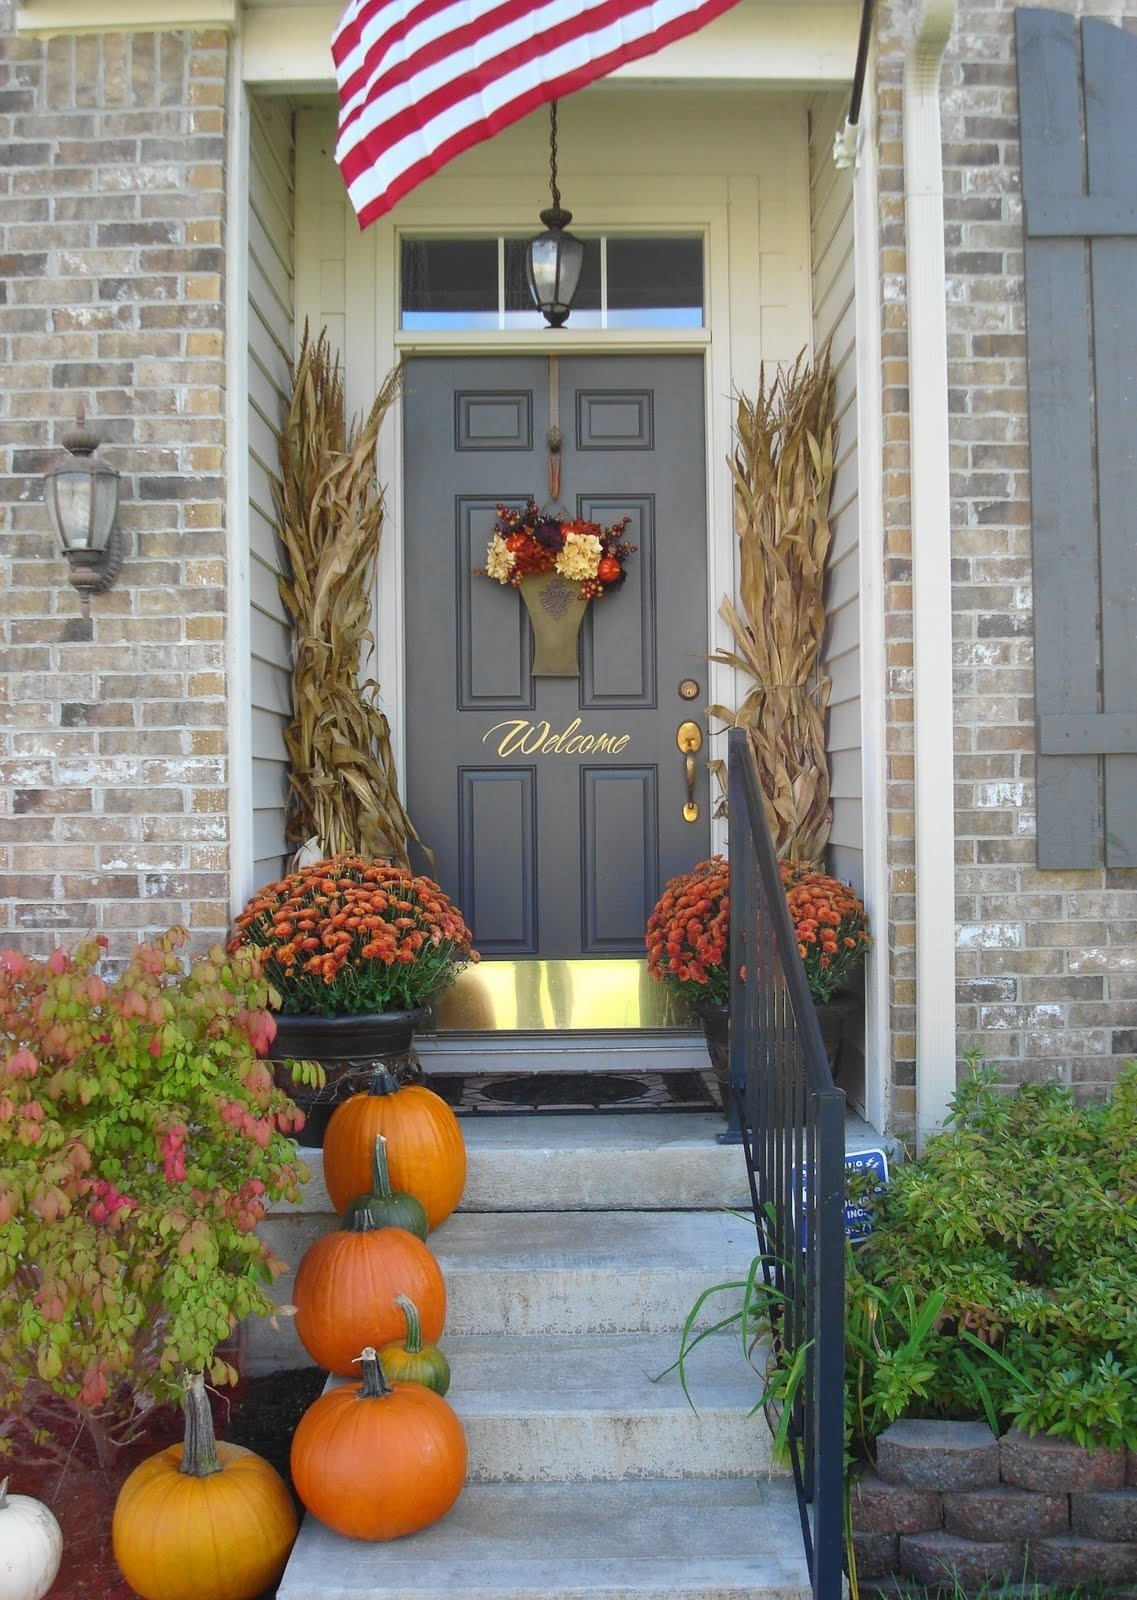 10 Lovely Front Porch Decorating Ideas For Fall 22 fall front porch ideas veranda home stories a to z fall front 2 2020